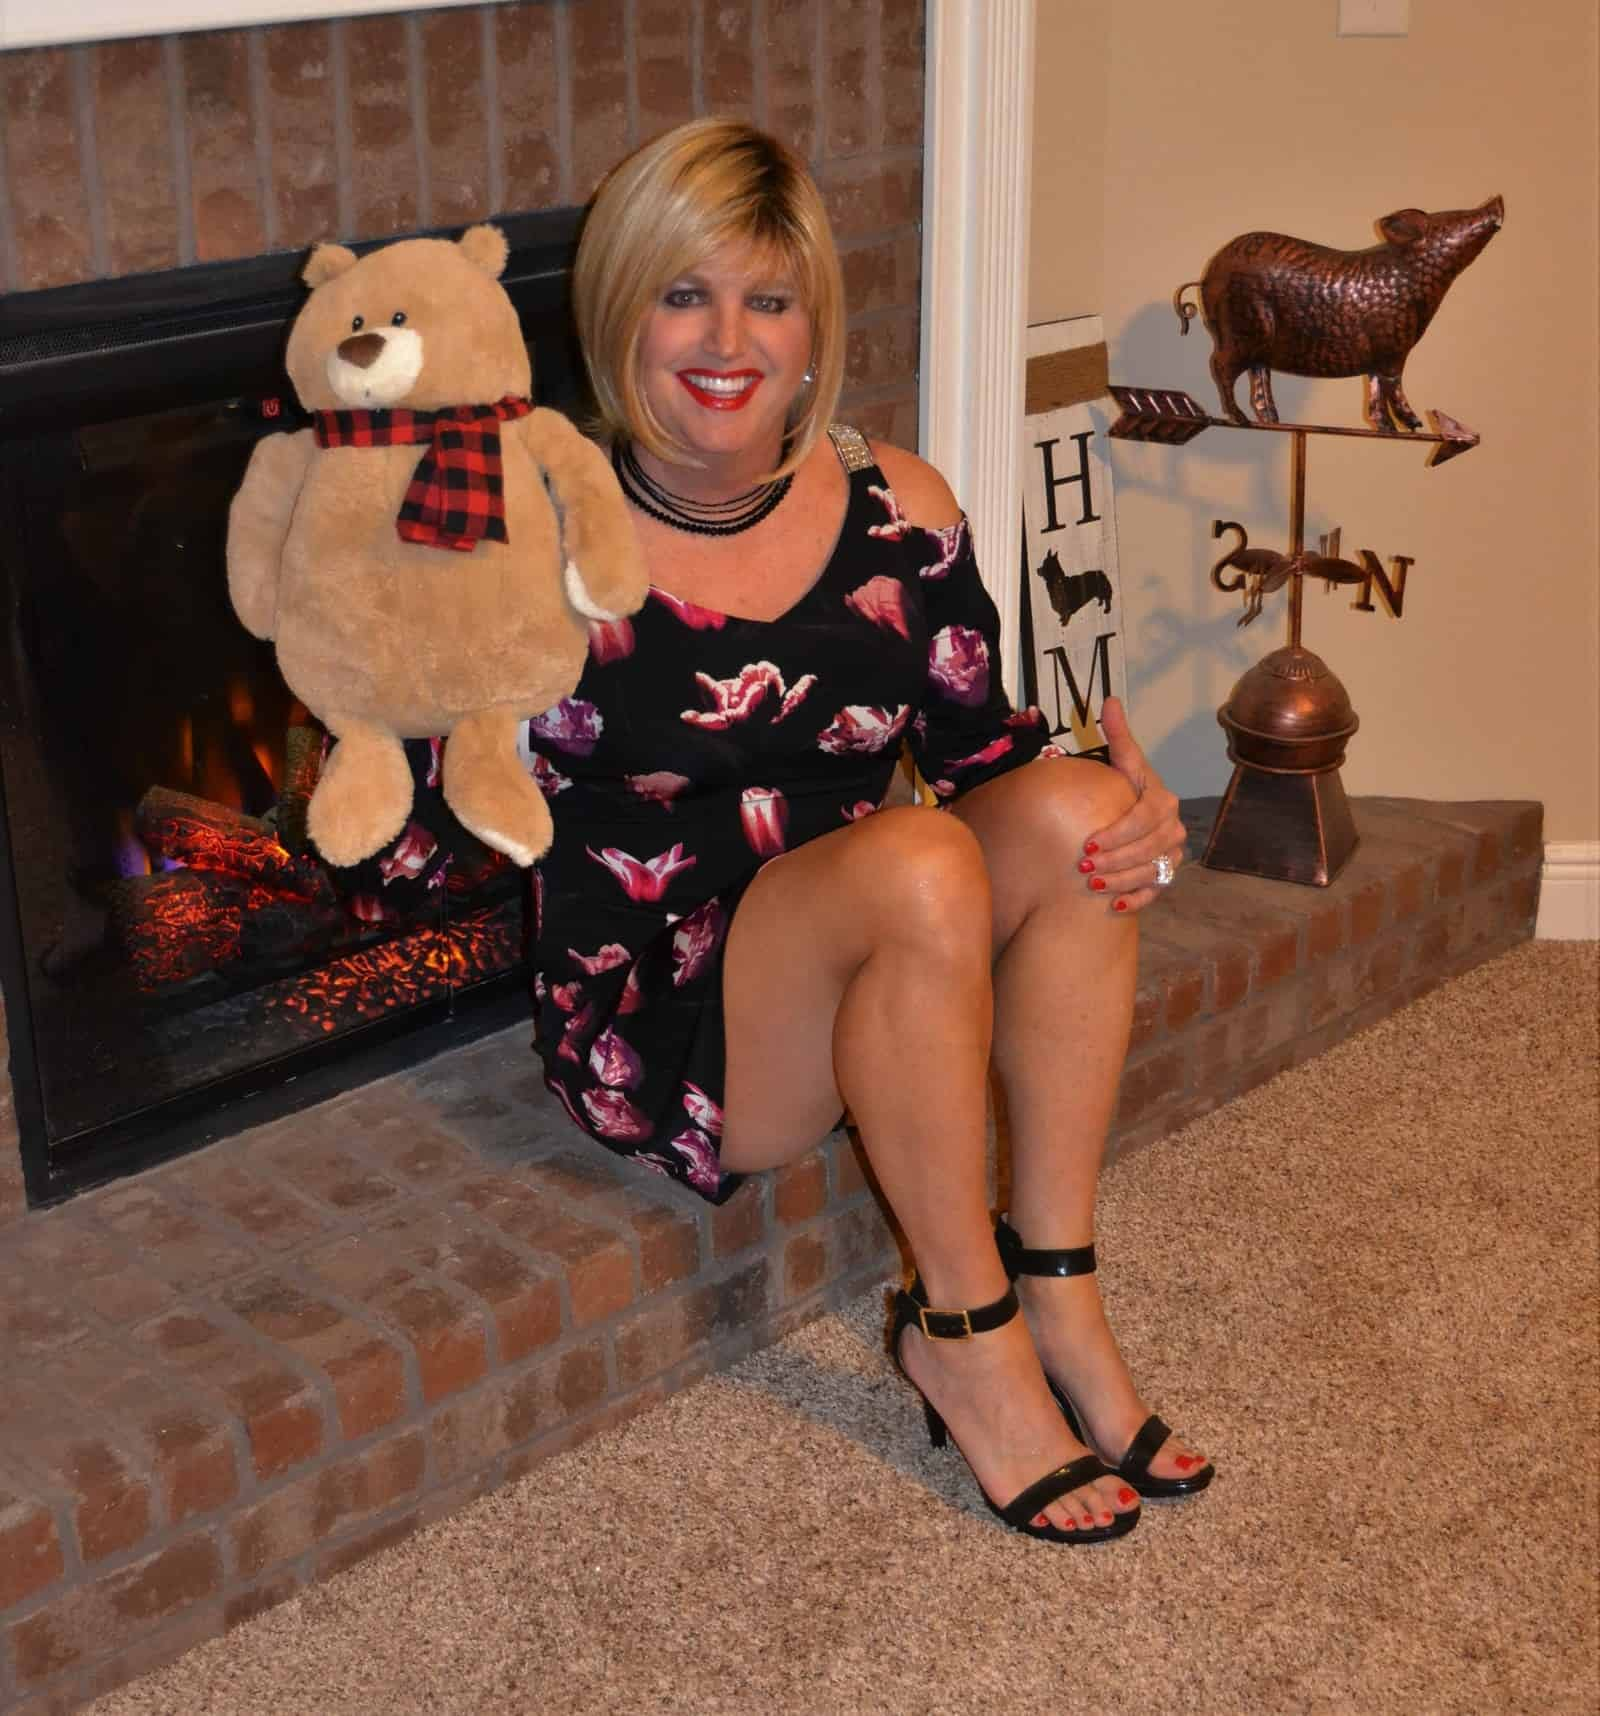 My Clearance Dress And My Teddy!